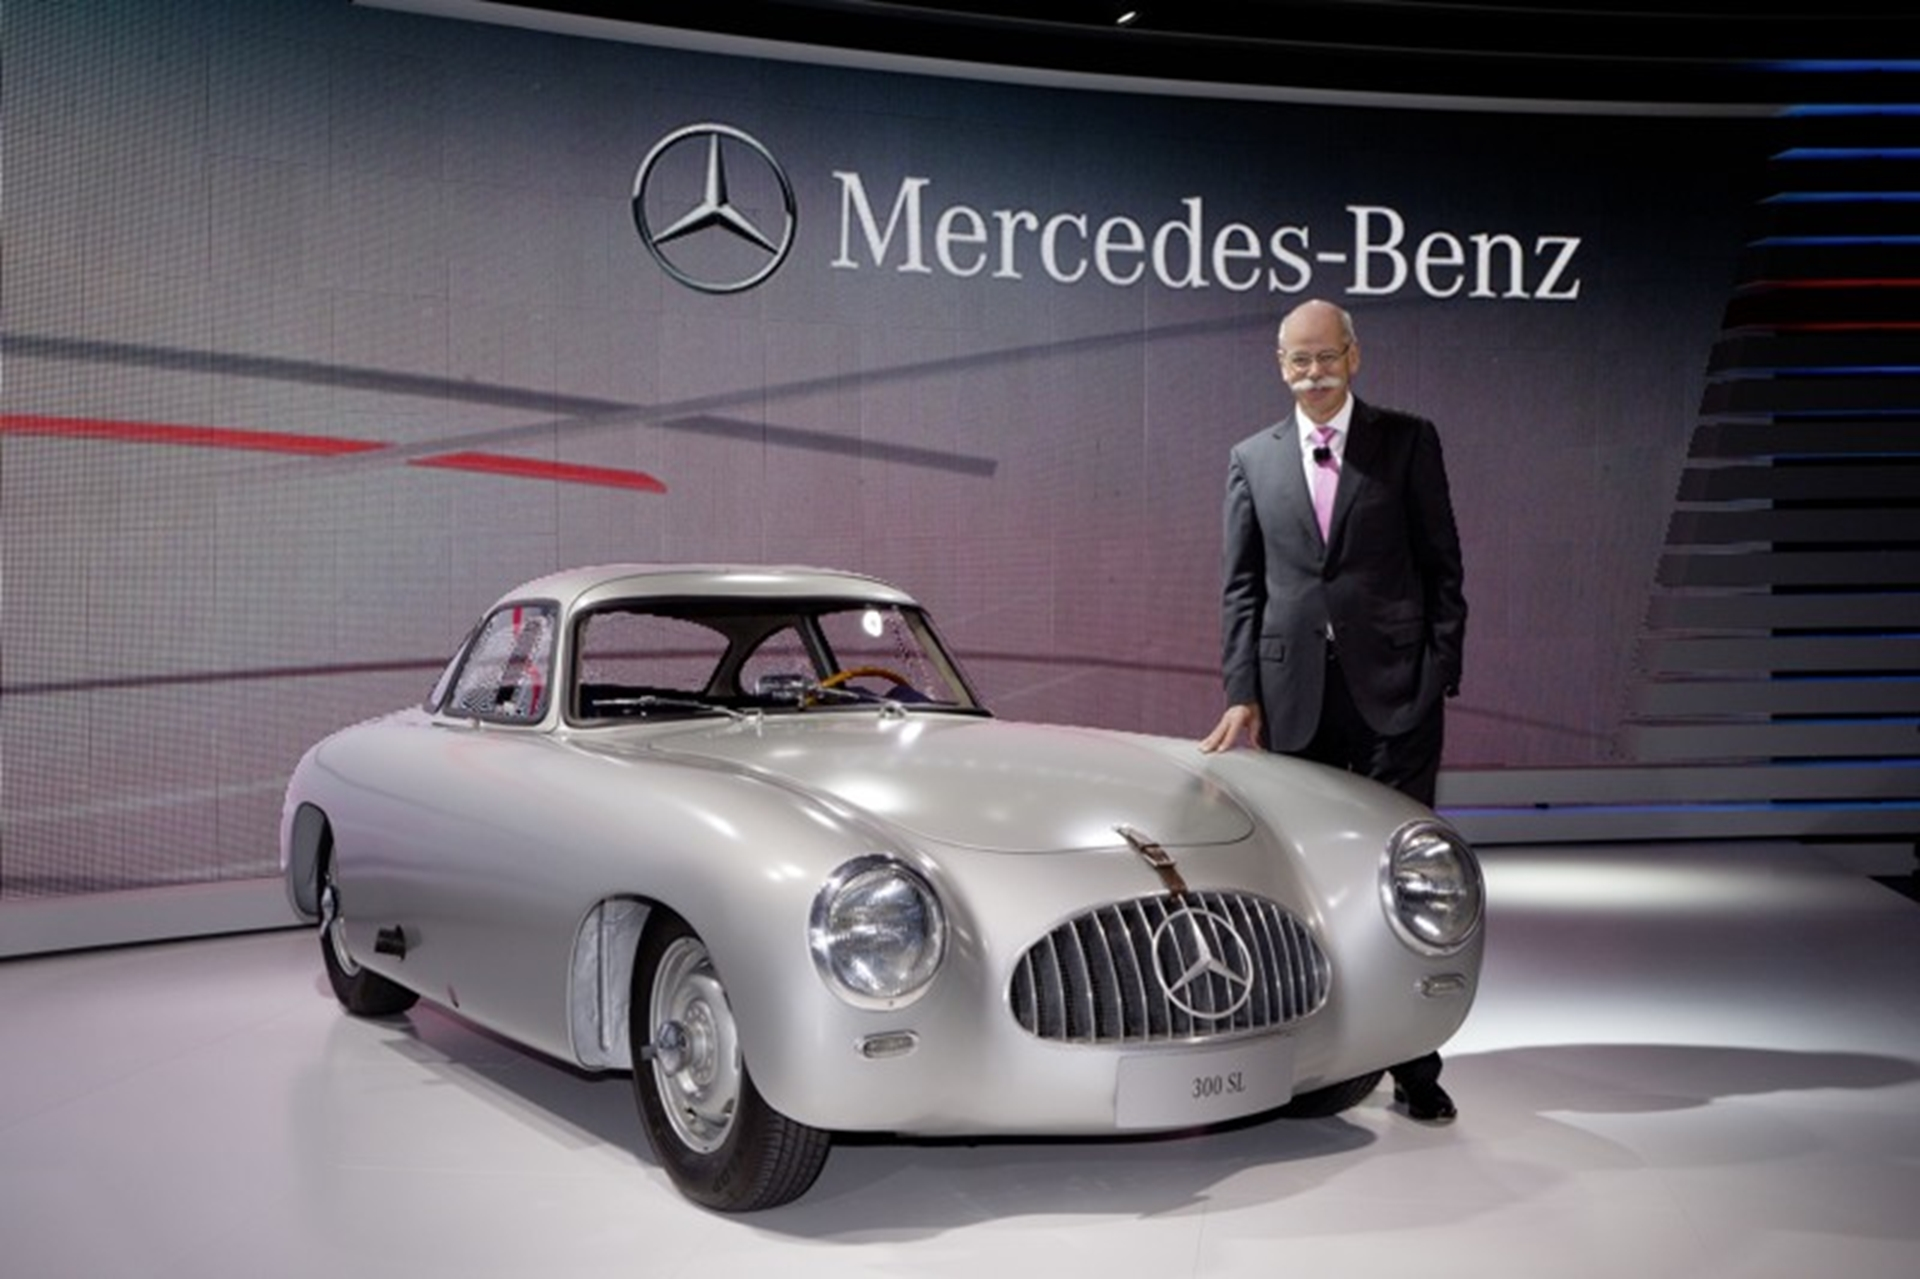 Mercedes-Benz 300 SL of 1952